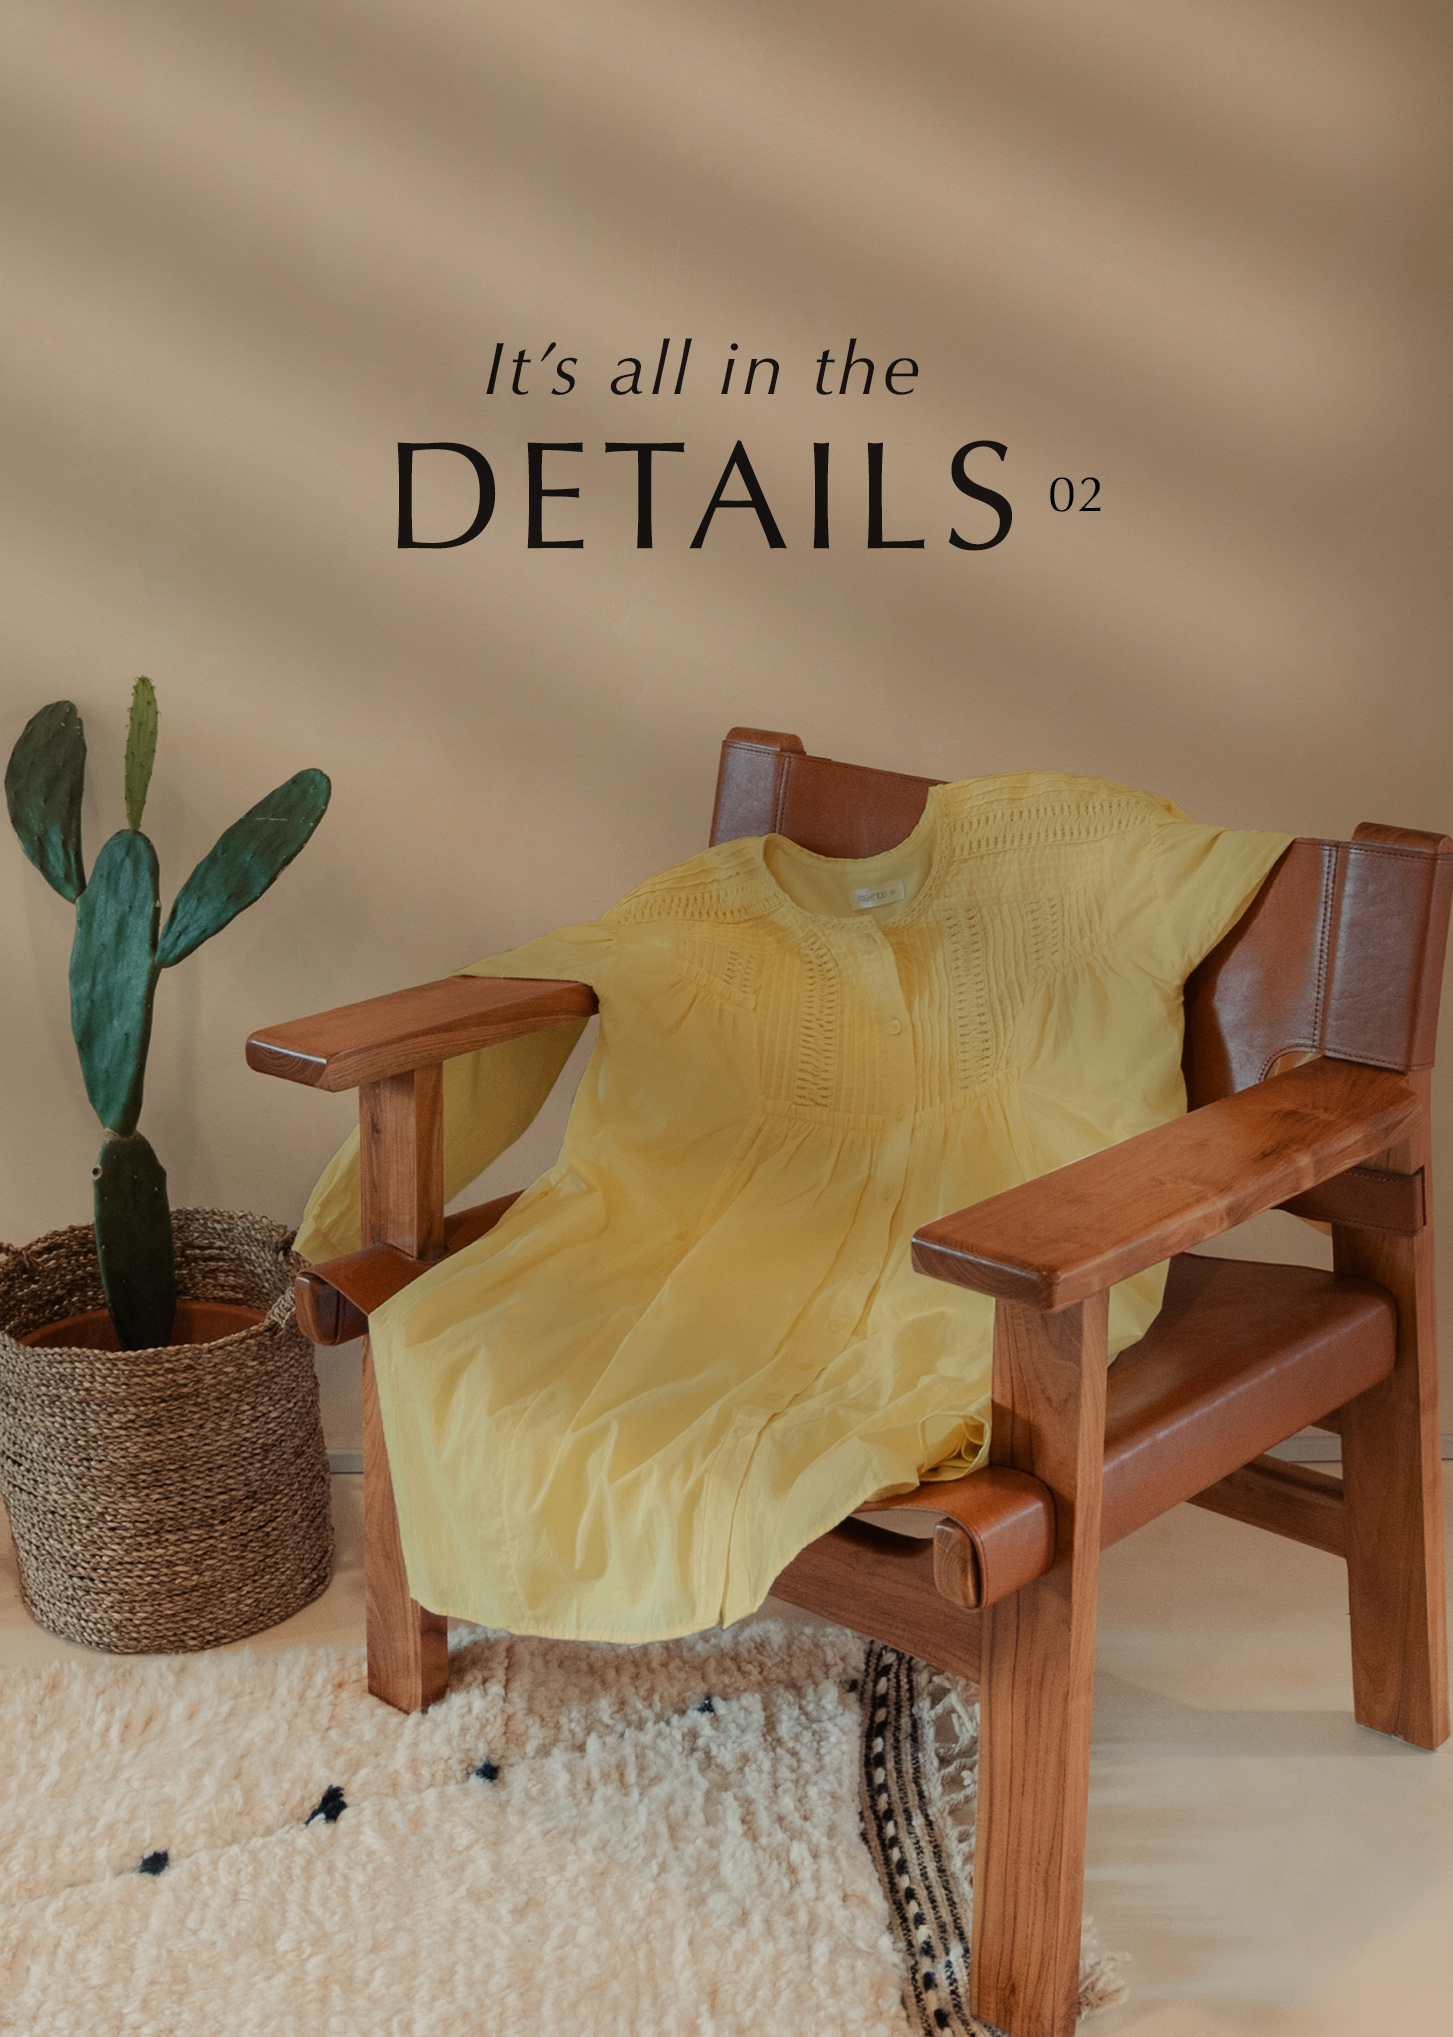 IT'S ALL IN THE DETAILS VOL. 02